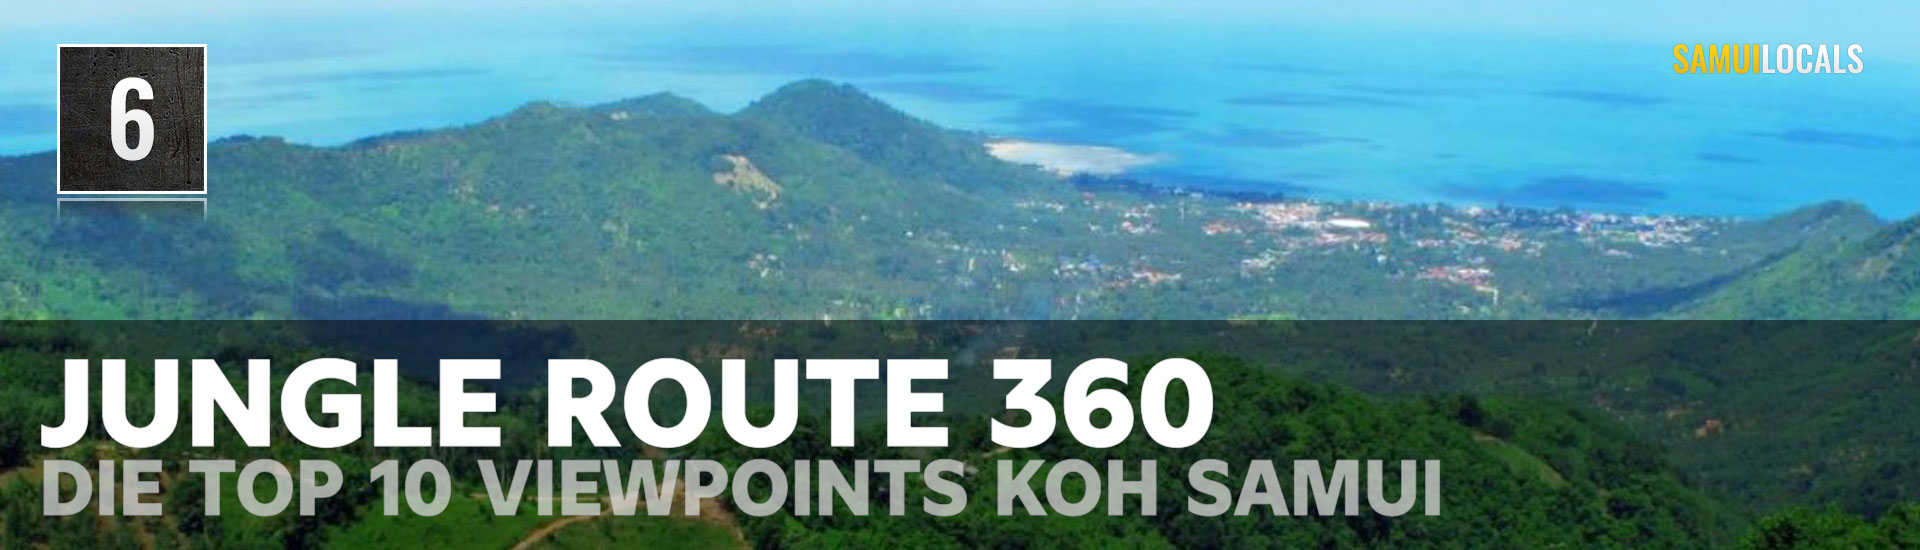 viewpoint_koh_samui_jungle_route_360